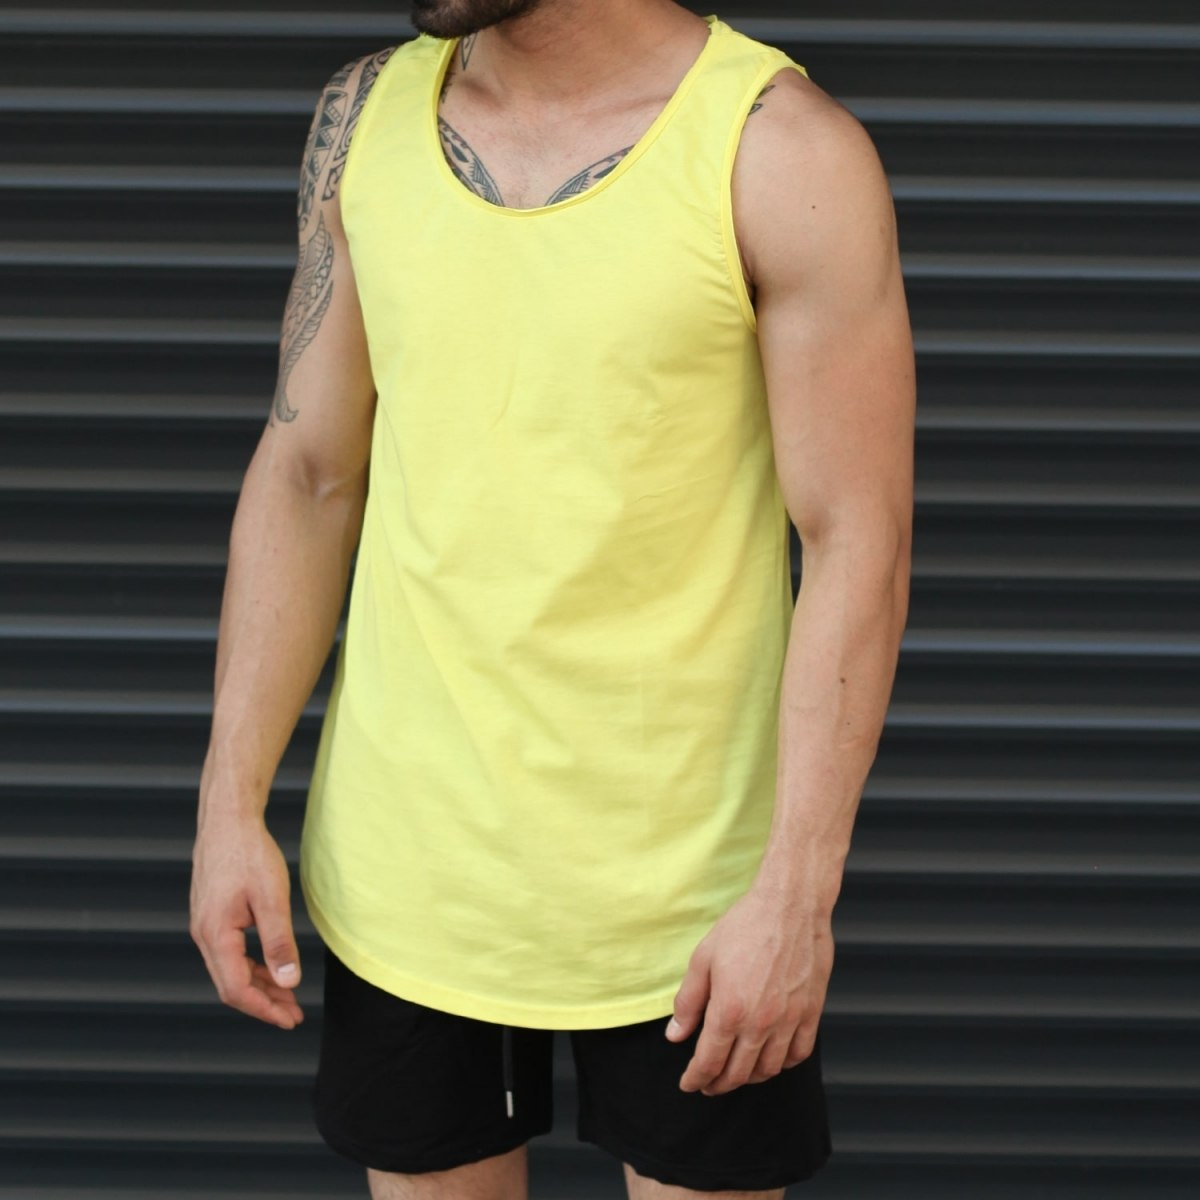 Men's Athletic Sleeveless Longline Tank Top Yellow Mv Premium Brand - 1